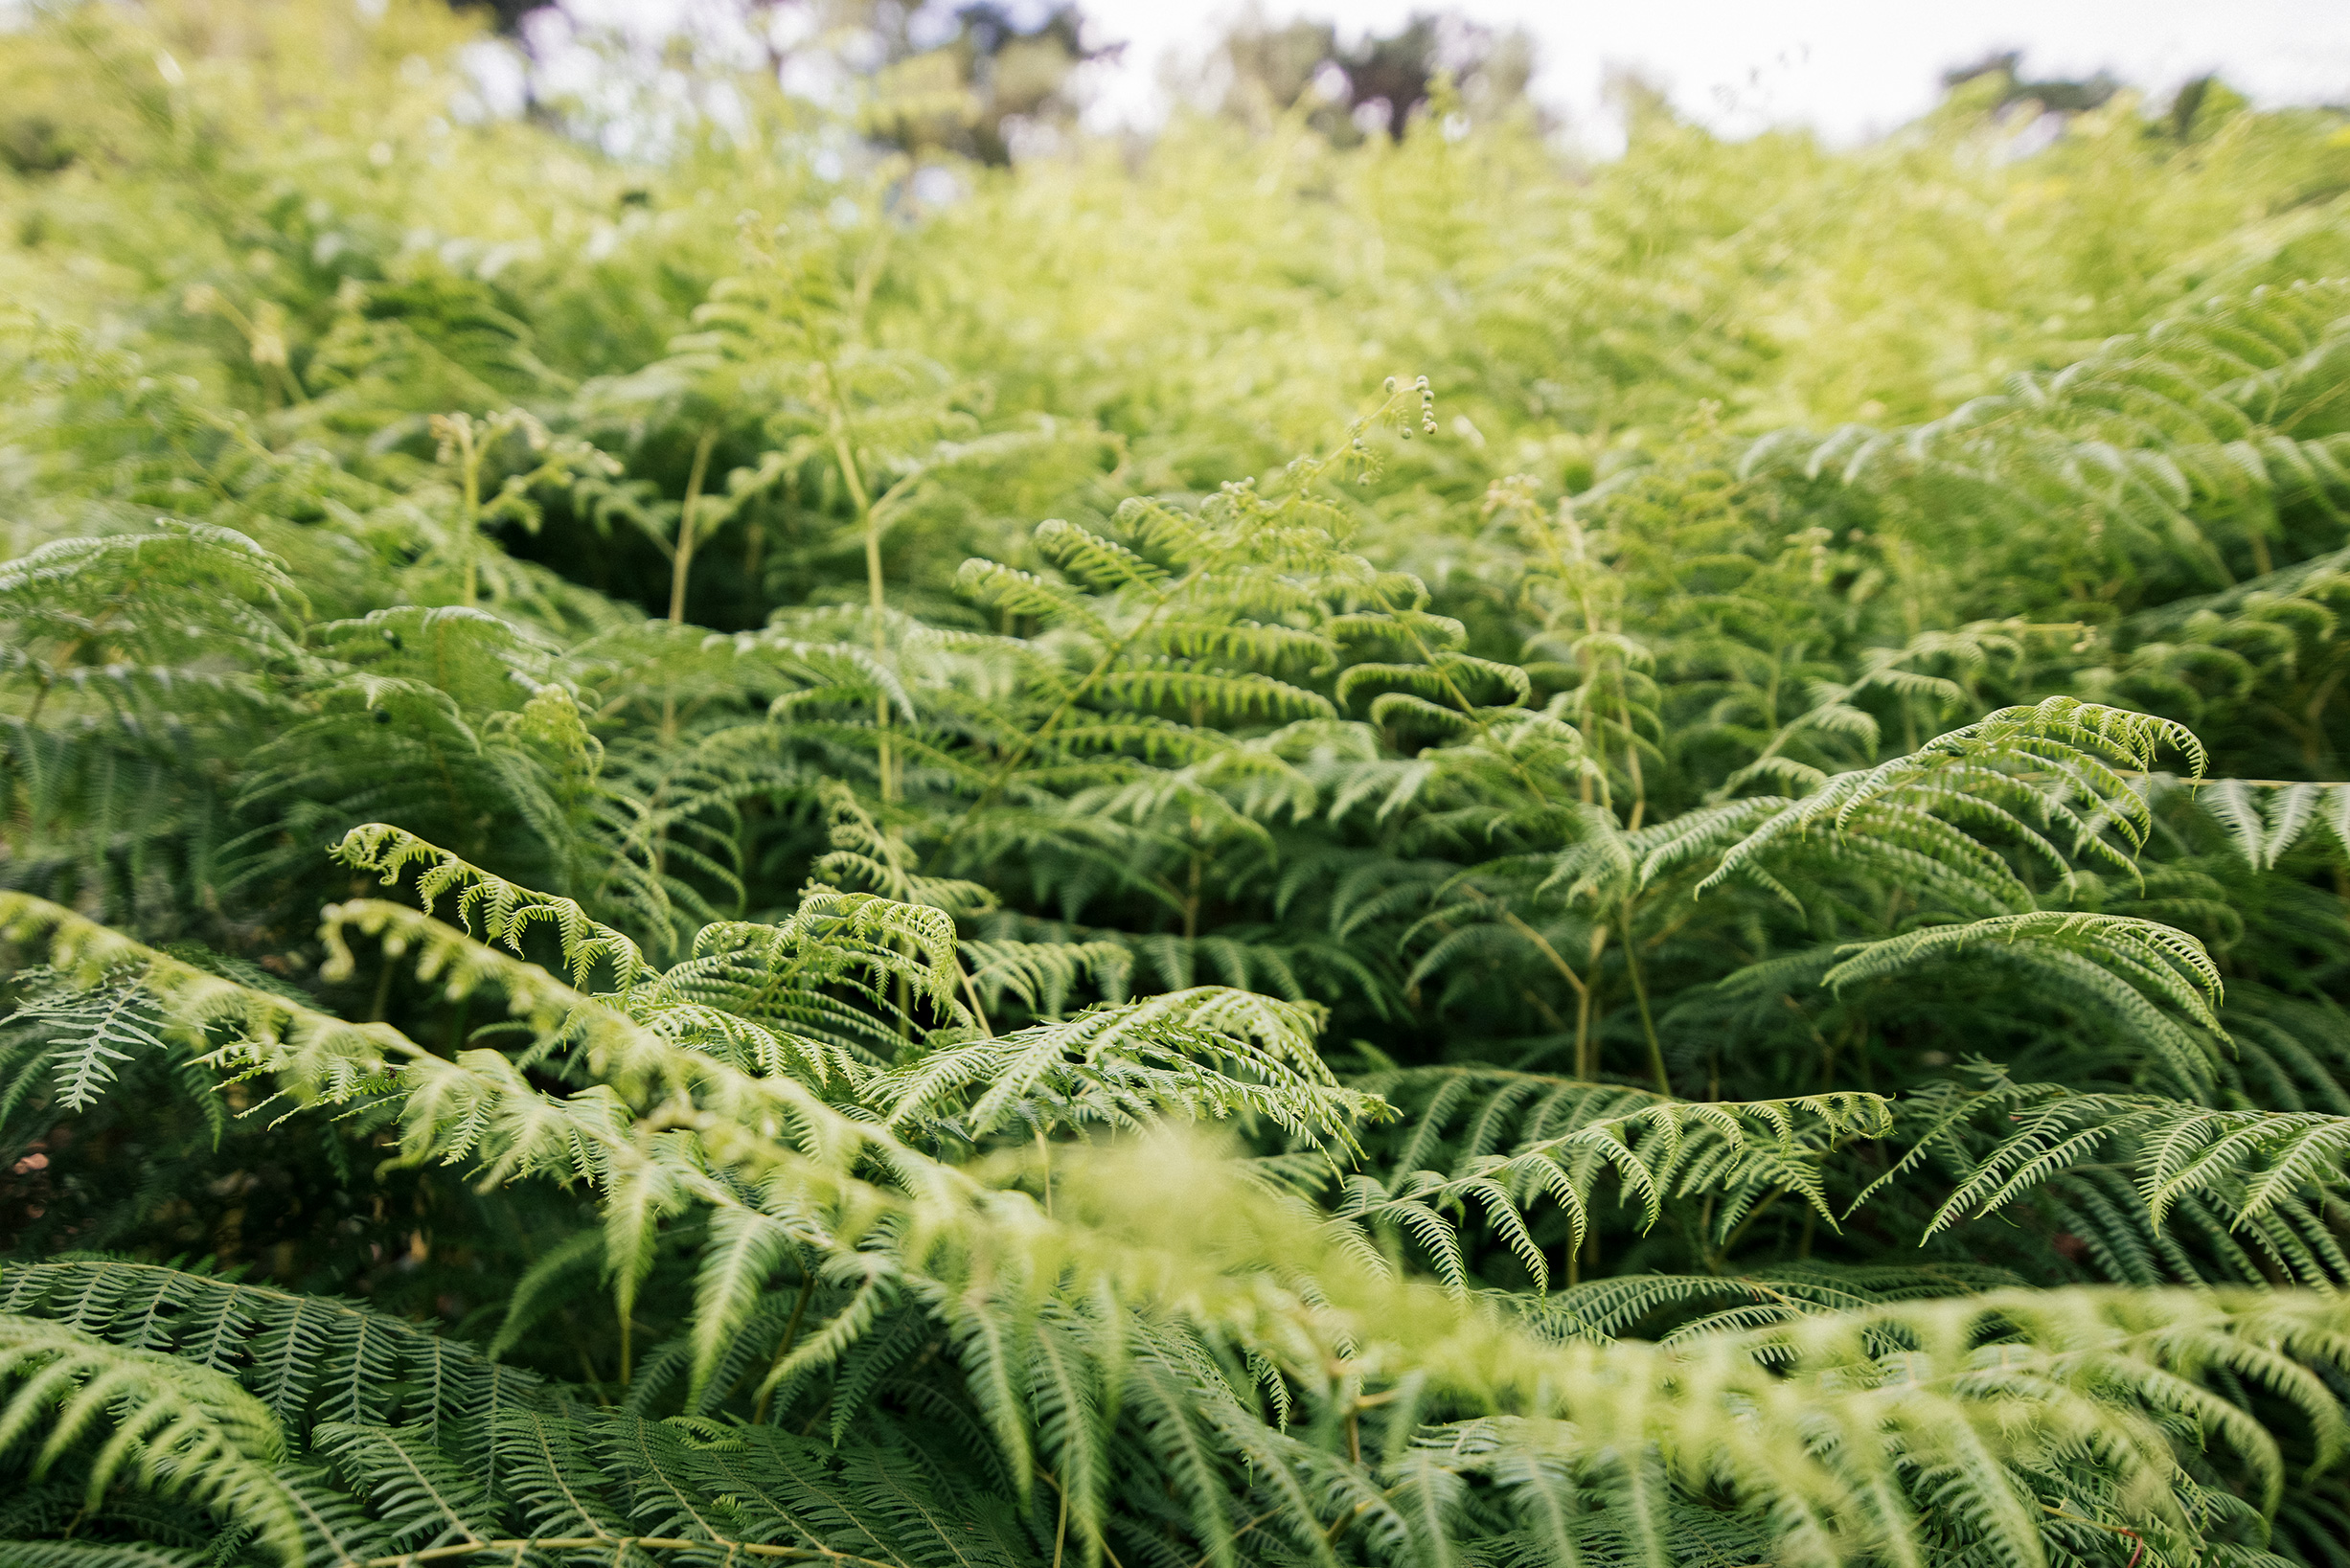 Fields of ferns